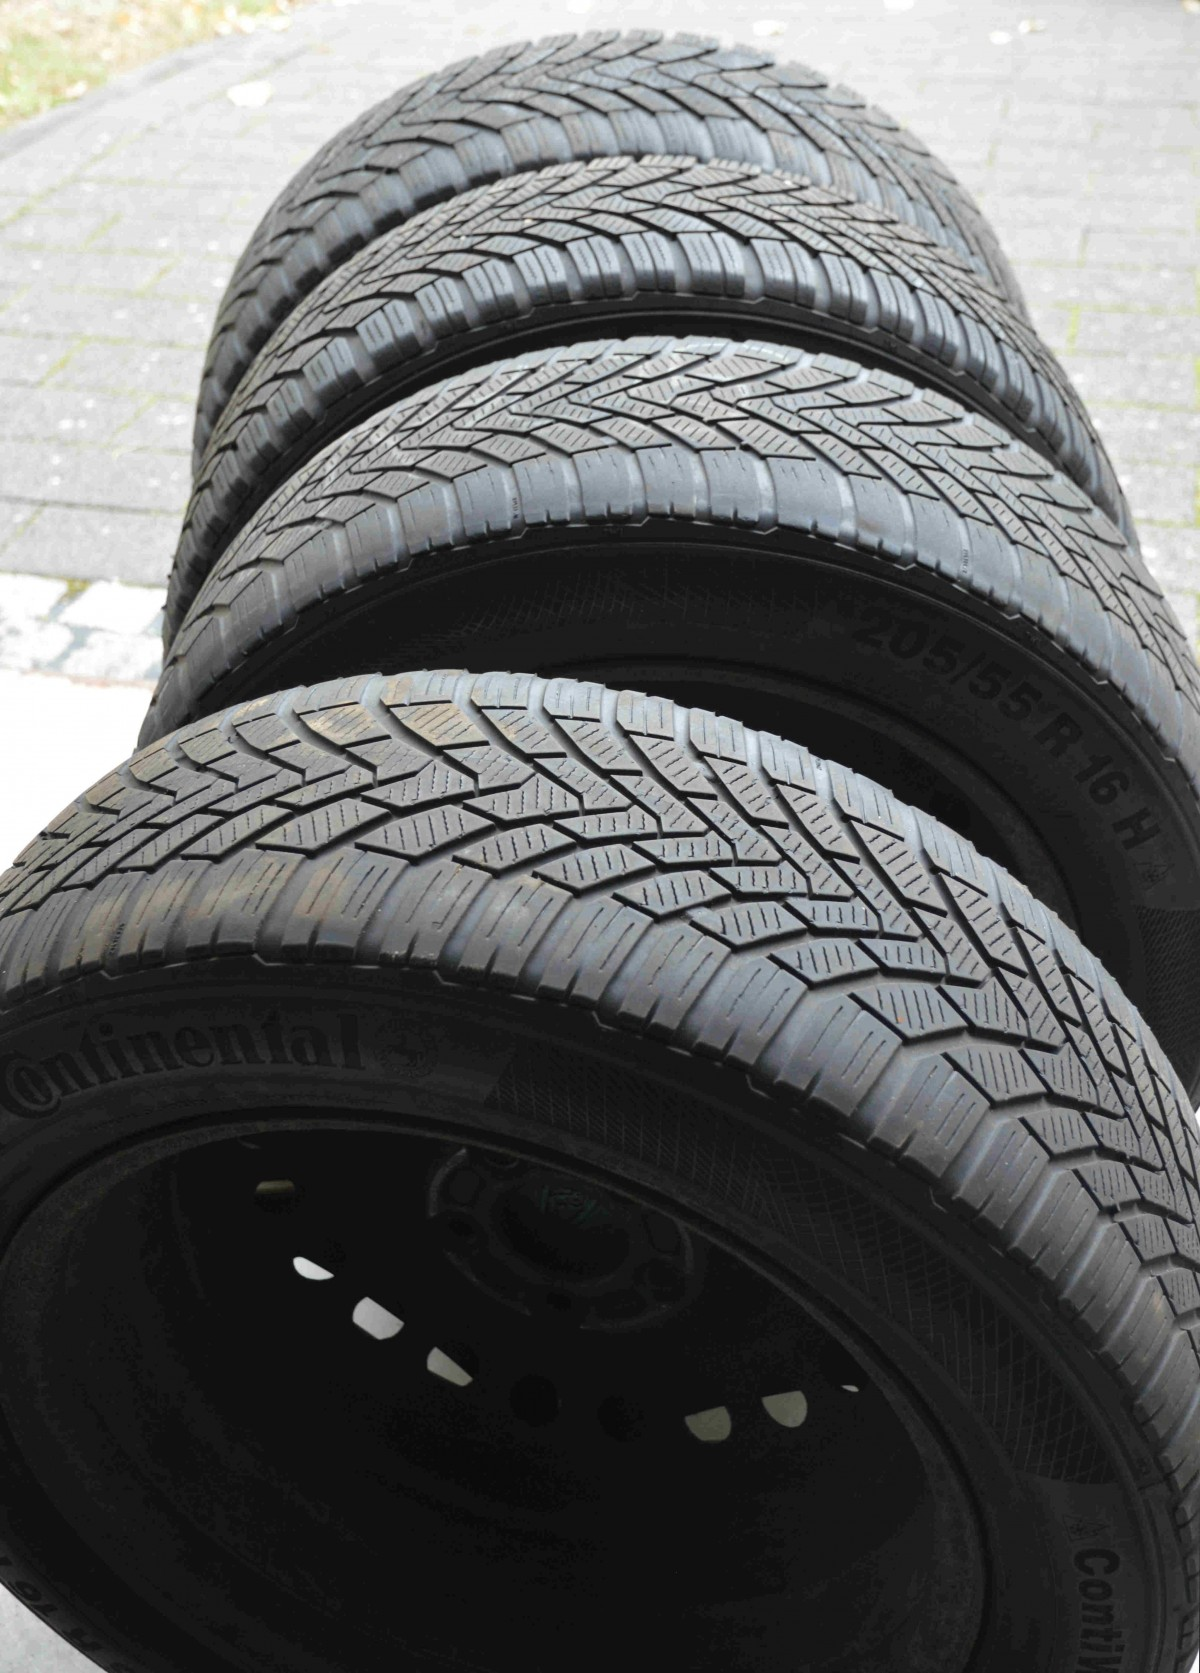 Choosing tyres: Picking the right rubber for your comfortable drive